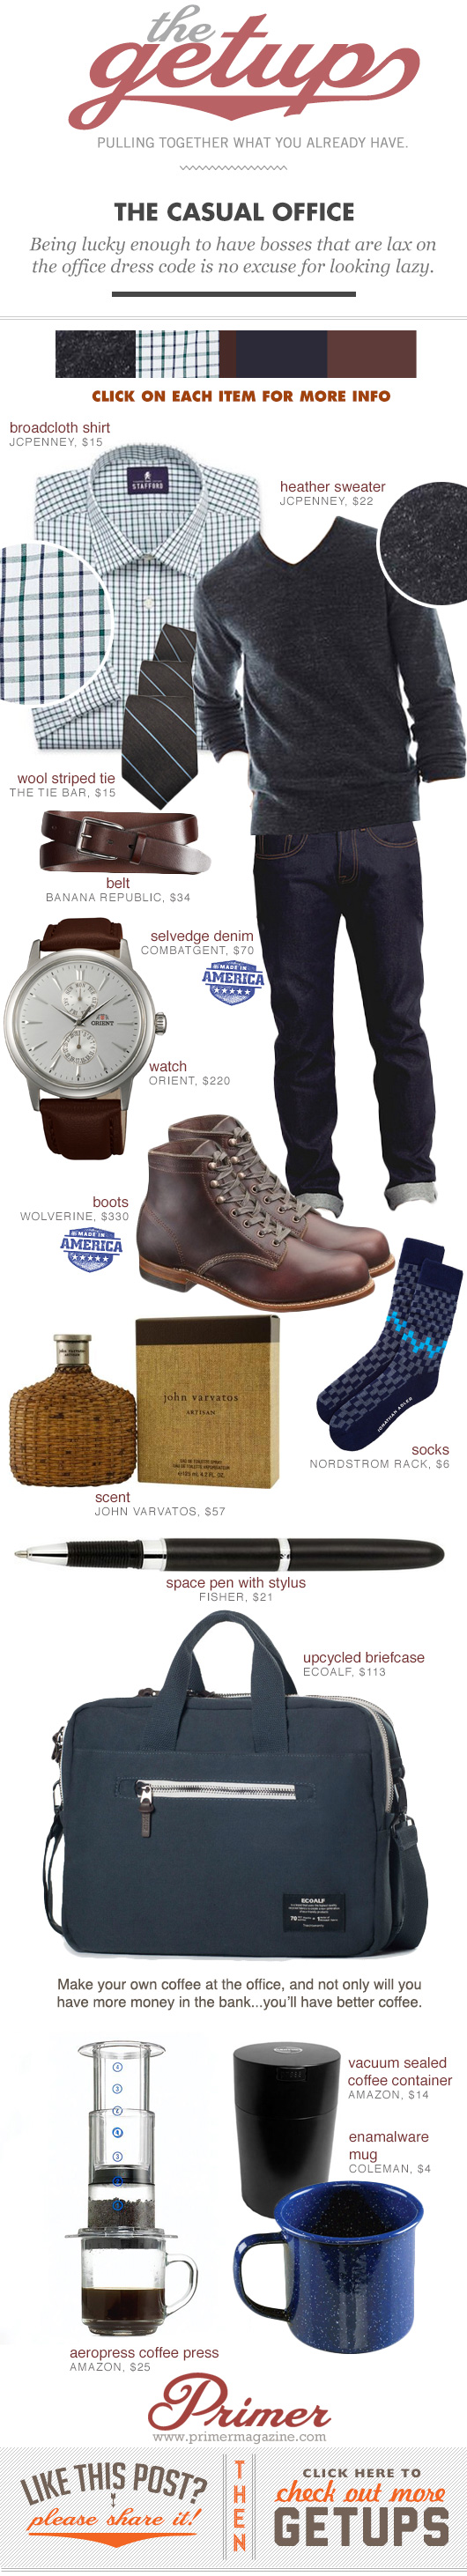 The Getup - Casual Office, gray sweater, button up shirt, blue jeans, and Wolverine boots